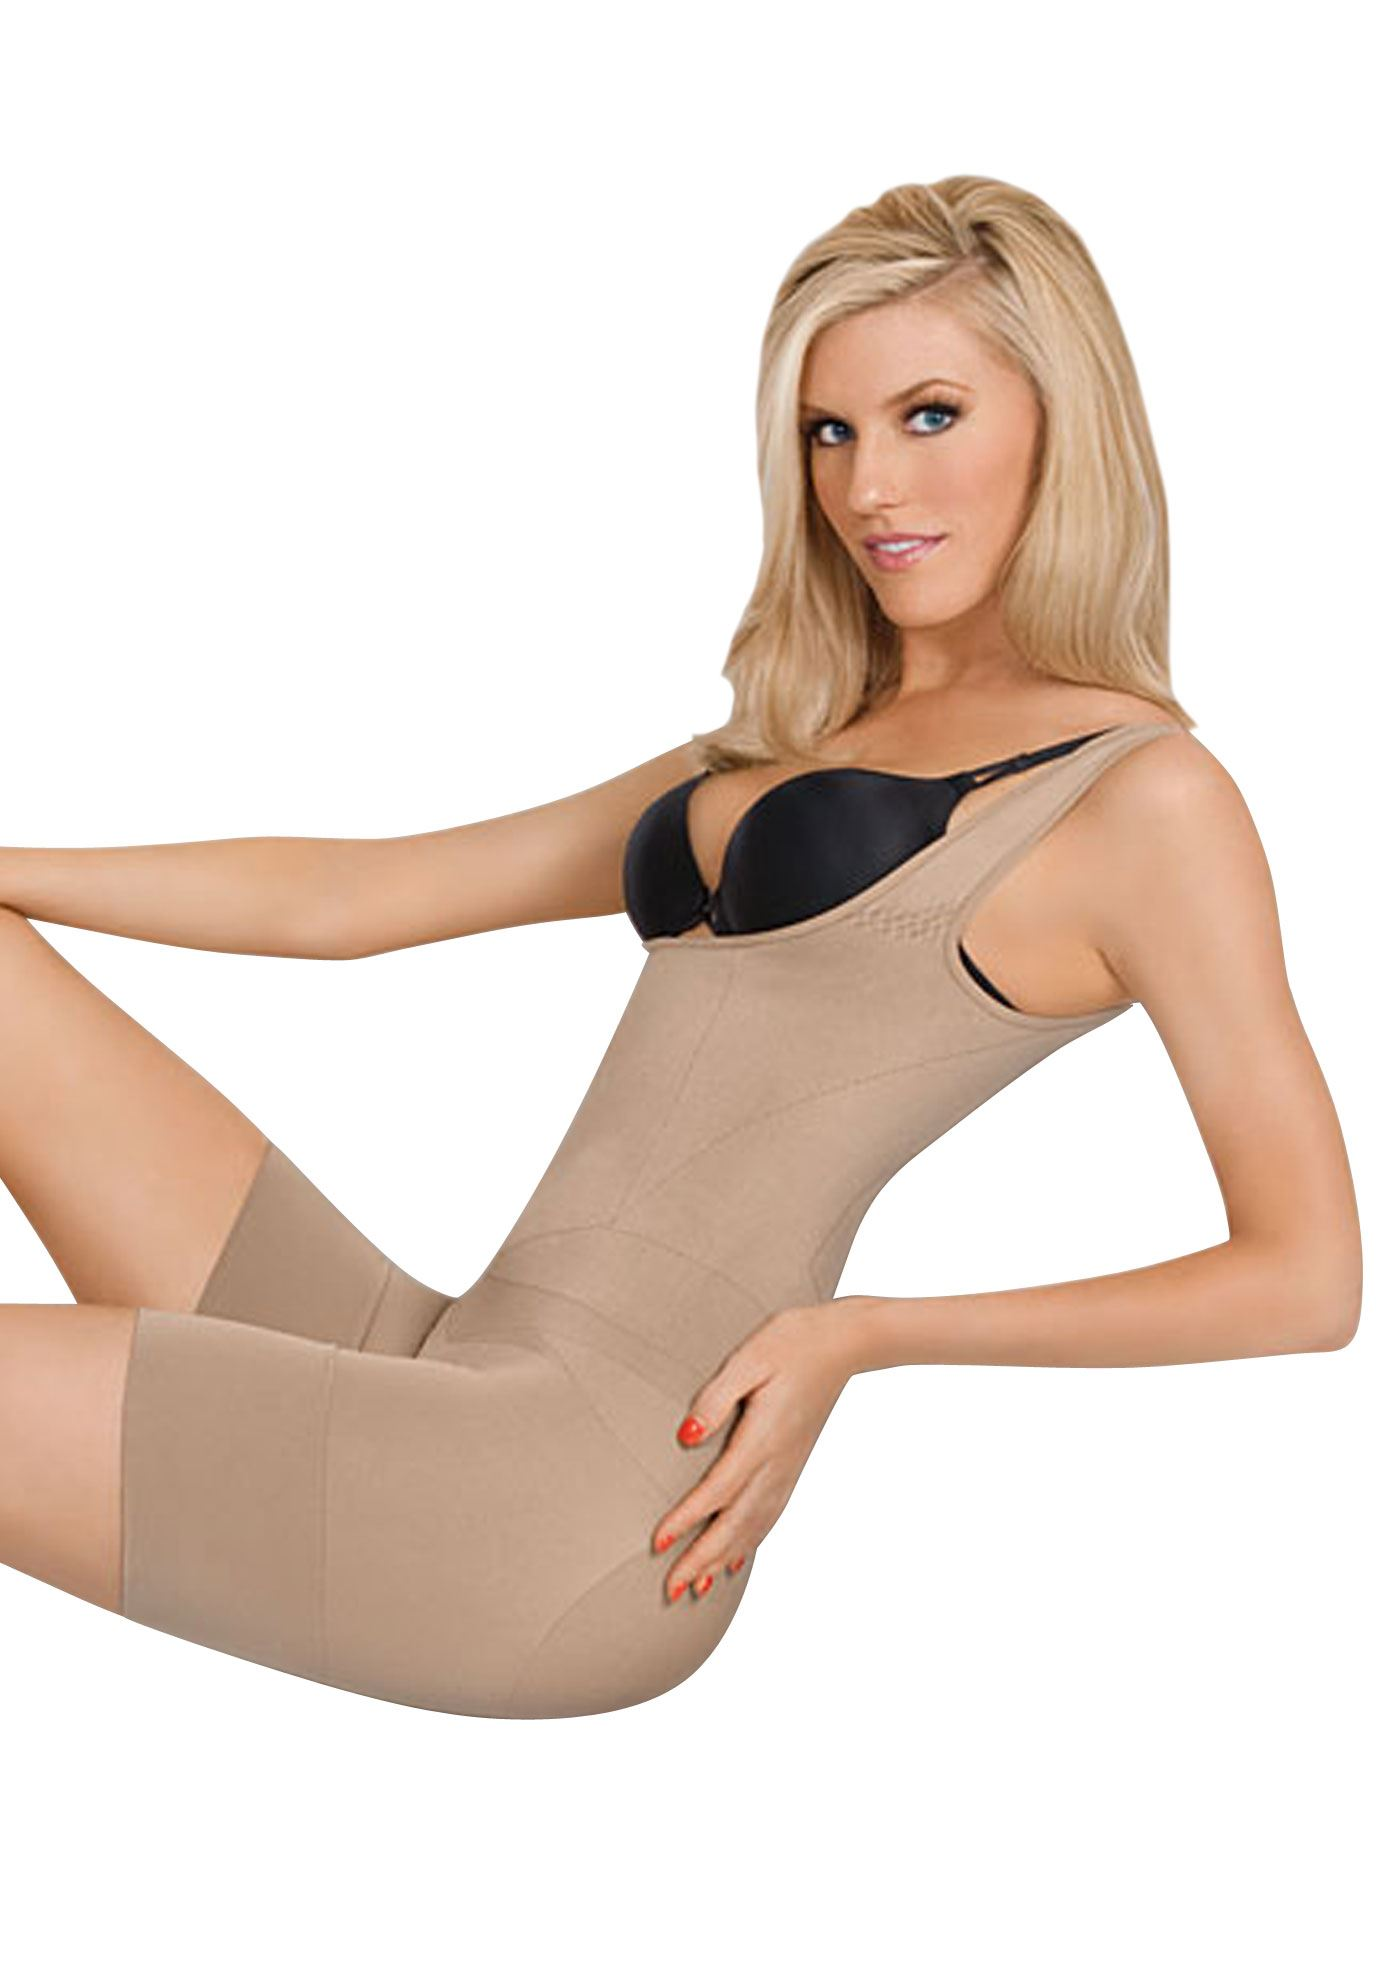 Julie France by Euroskins Frontless Body Shaper,